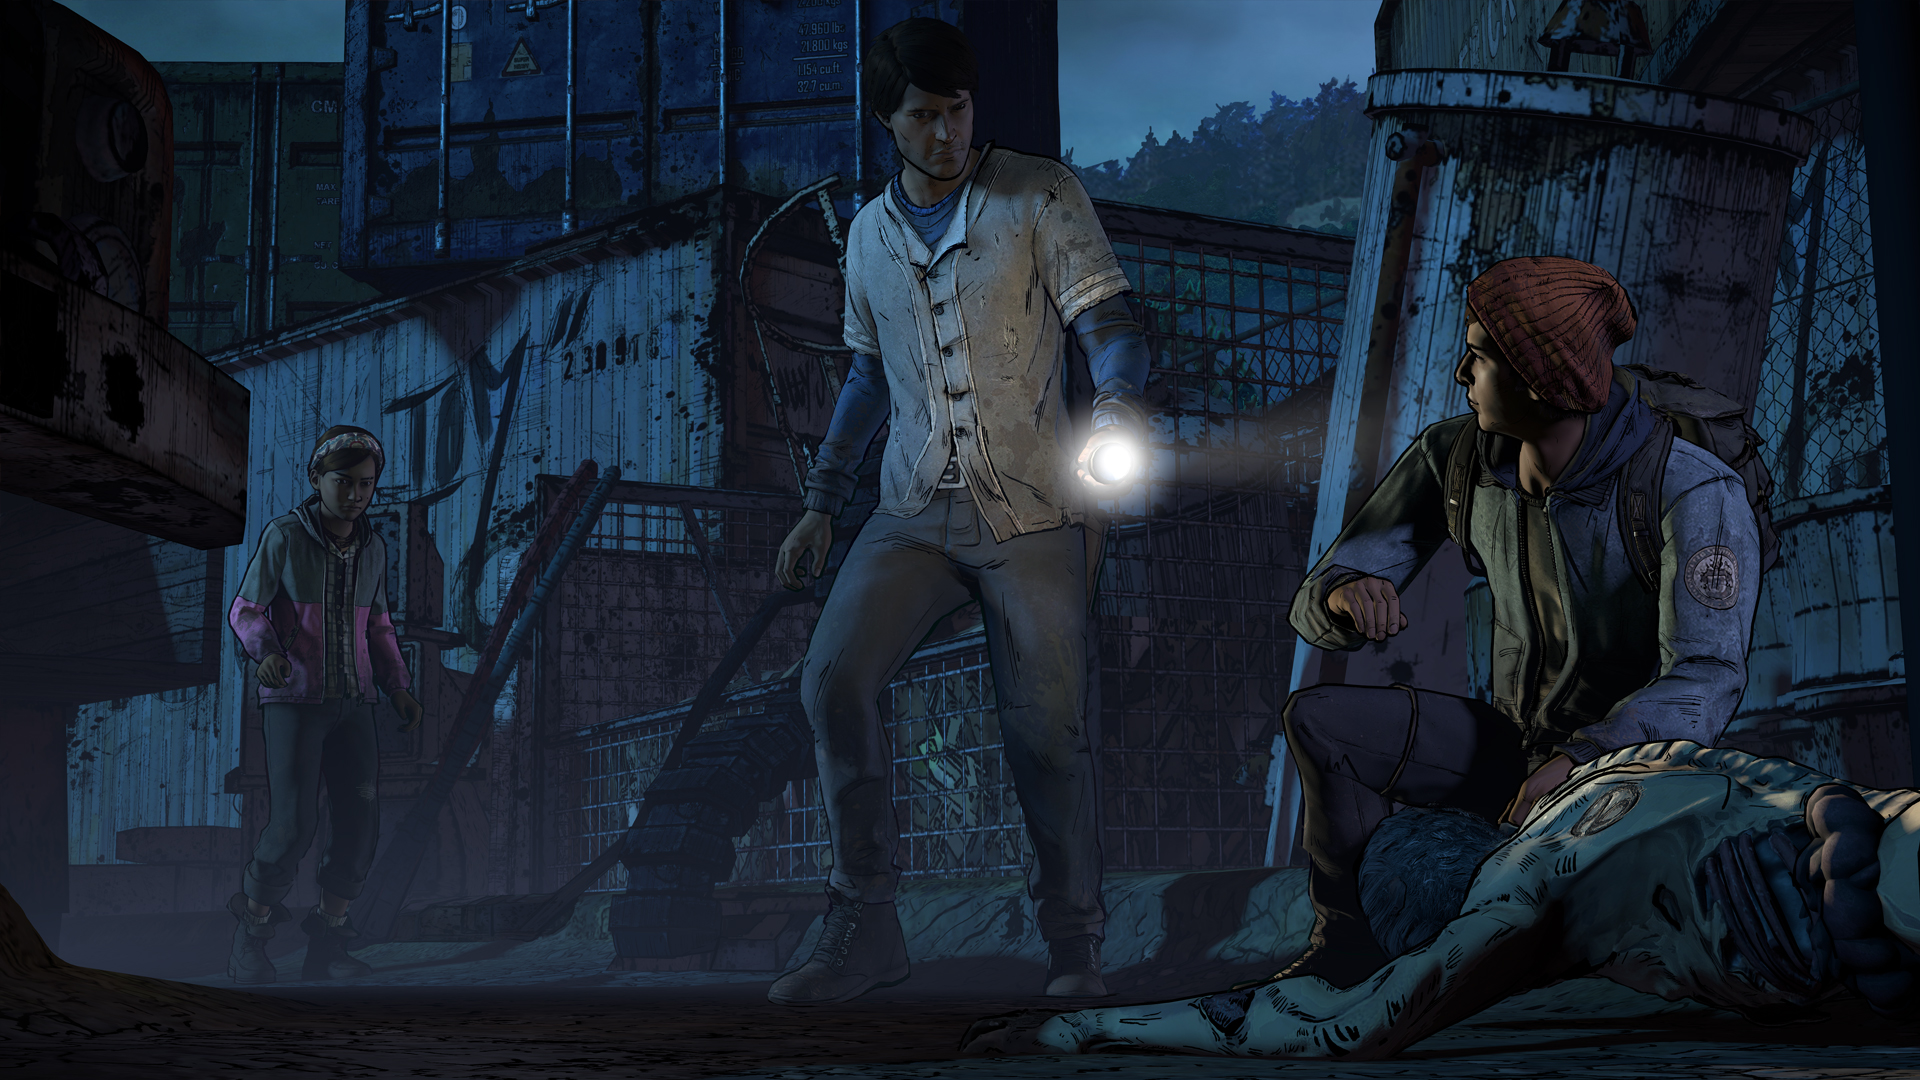 Telltale announces The Walking Dead Season 3